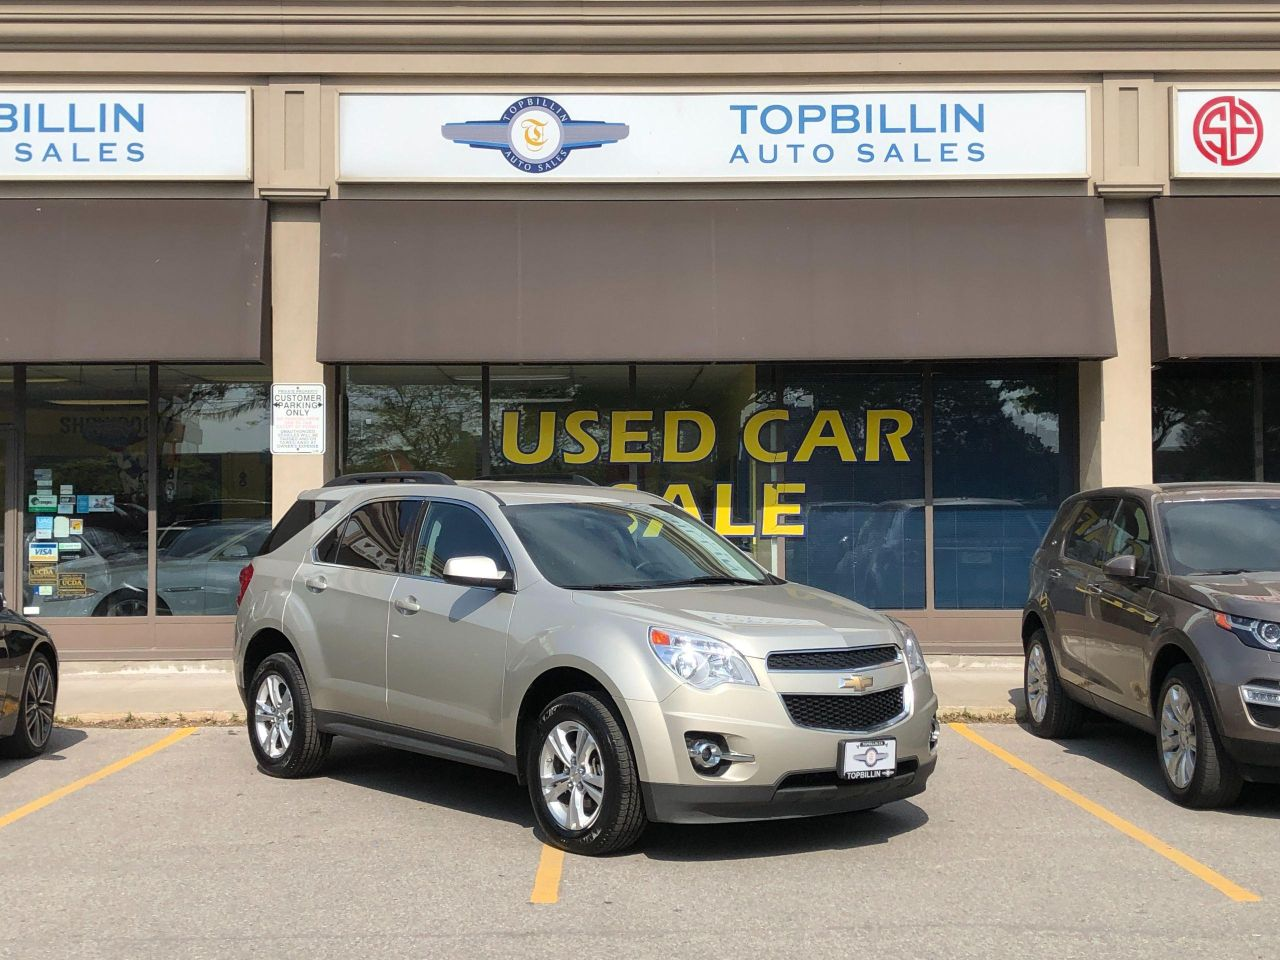 2015 Chevrolet Equinox 2LT V6, Leather, Backup Cam, 2 Years Warranty